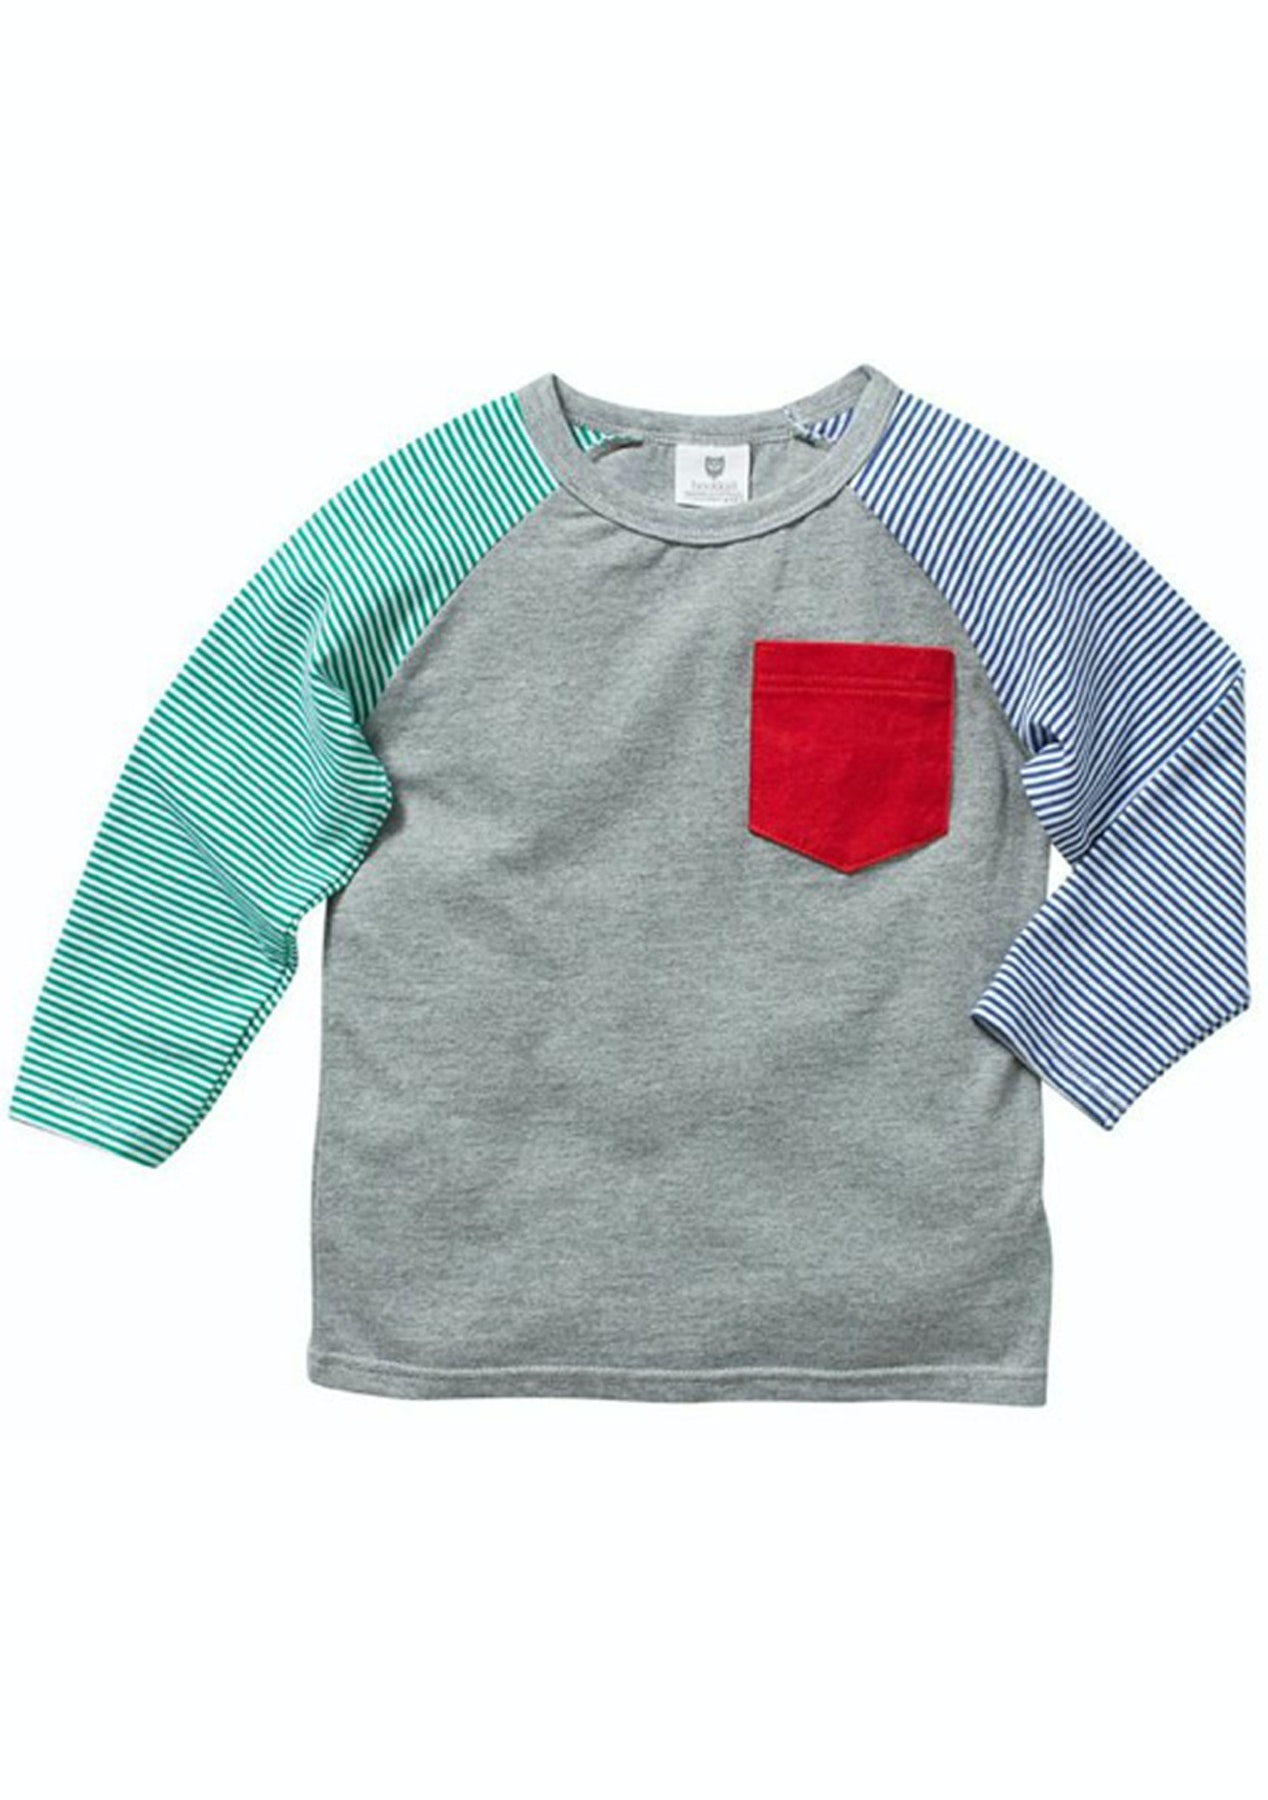 934d4b381f3 Hootkid - In The Pocket Tee - Grey Marle - Kids Fashion Outlet   More -  Onceit